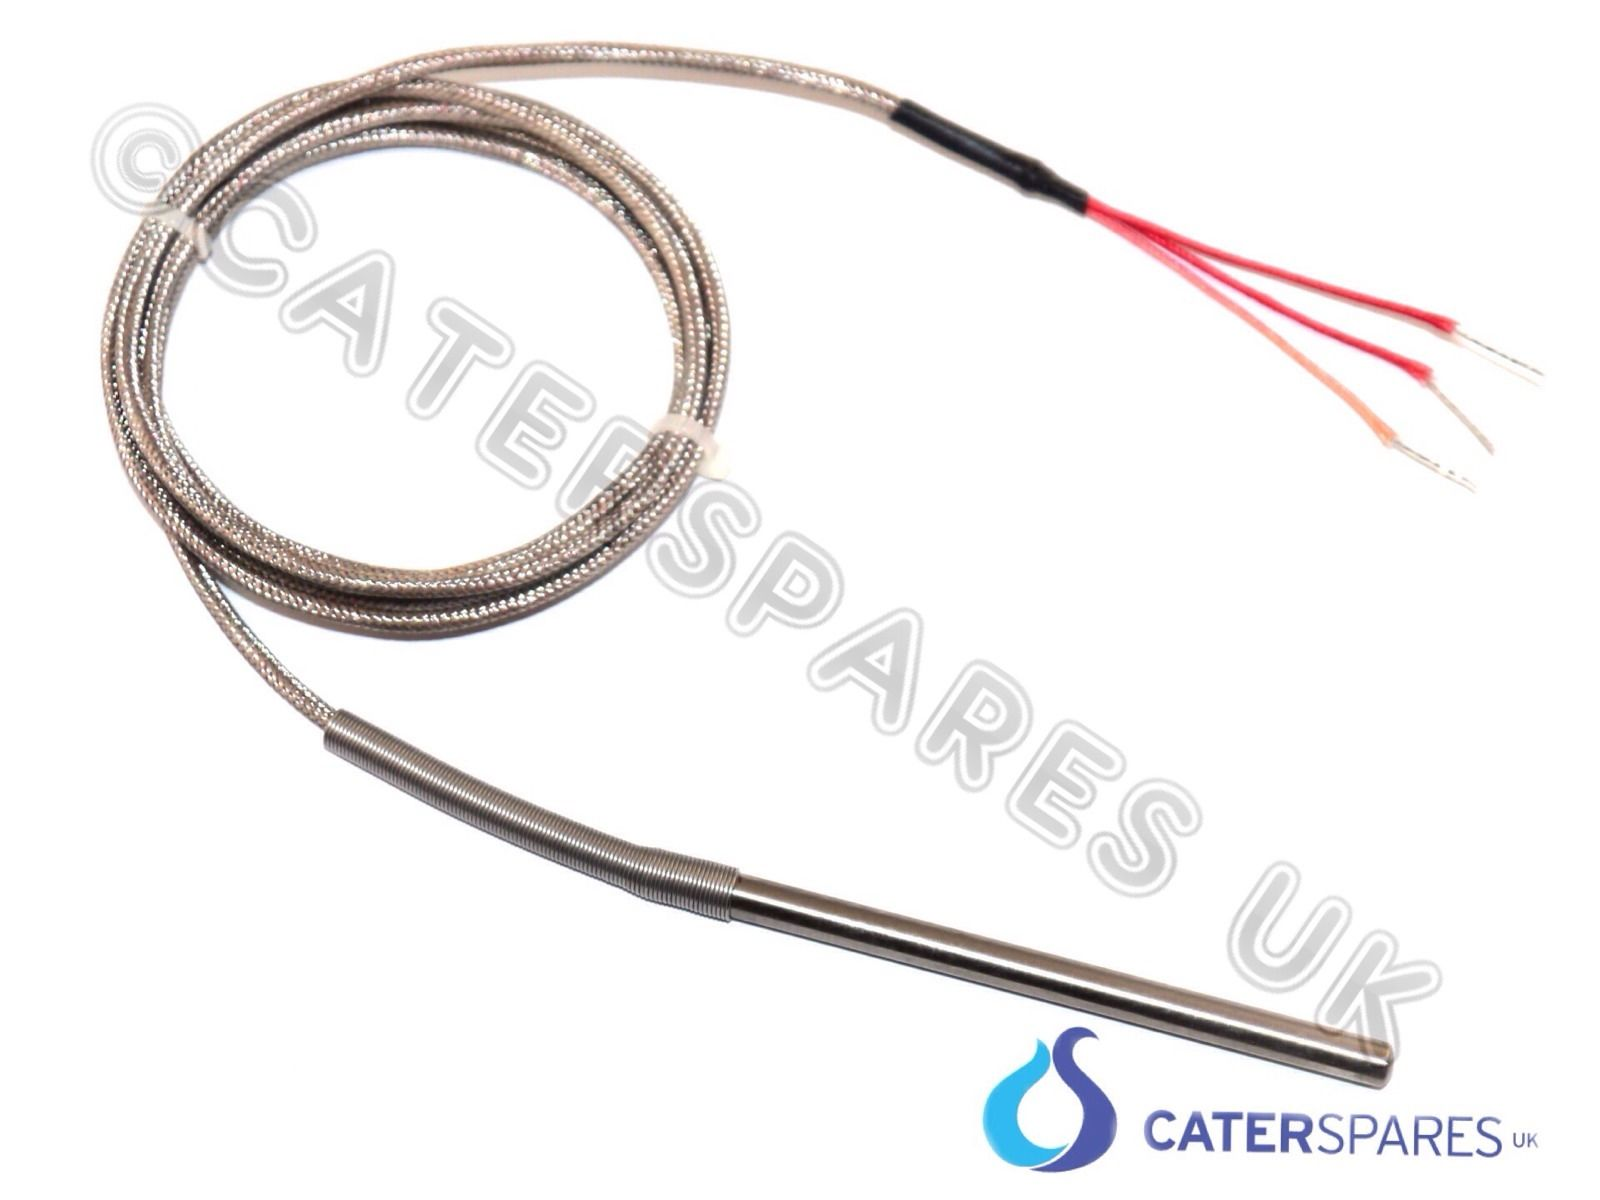 PT100 3 WIRE THERMOCOUPLE HIGH TEMPERATURE PROBE 1500MM LONG PIZZA  #0F8BBC